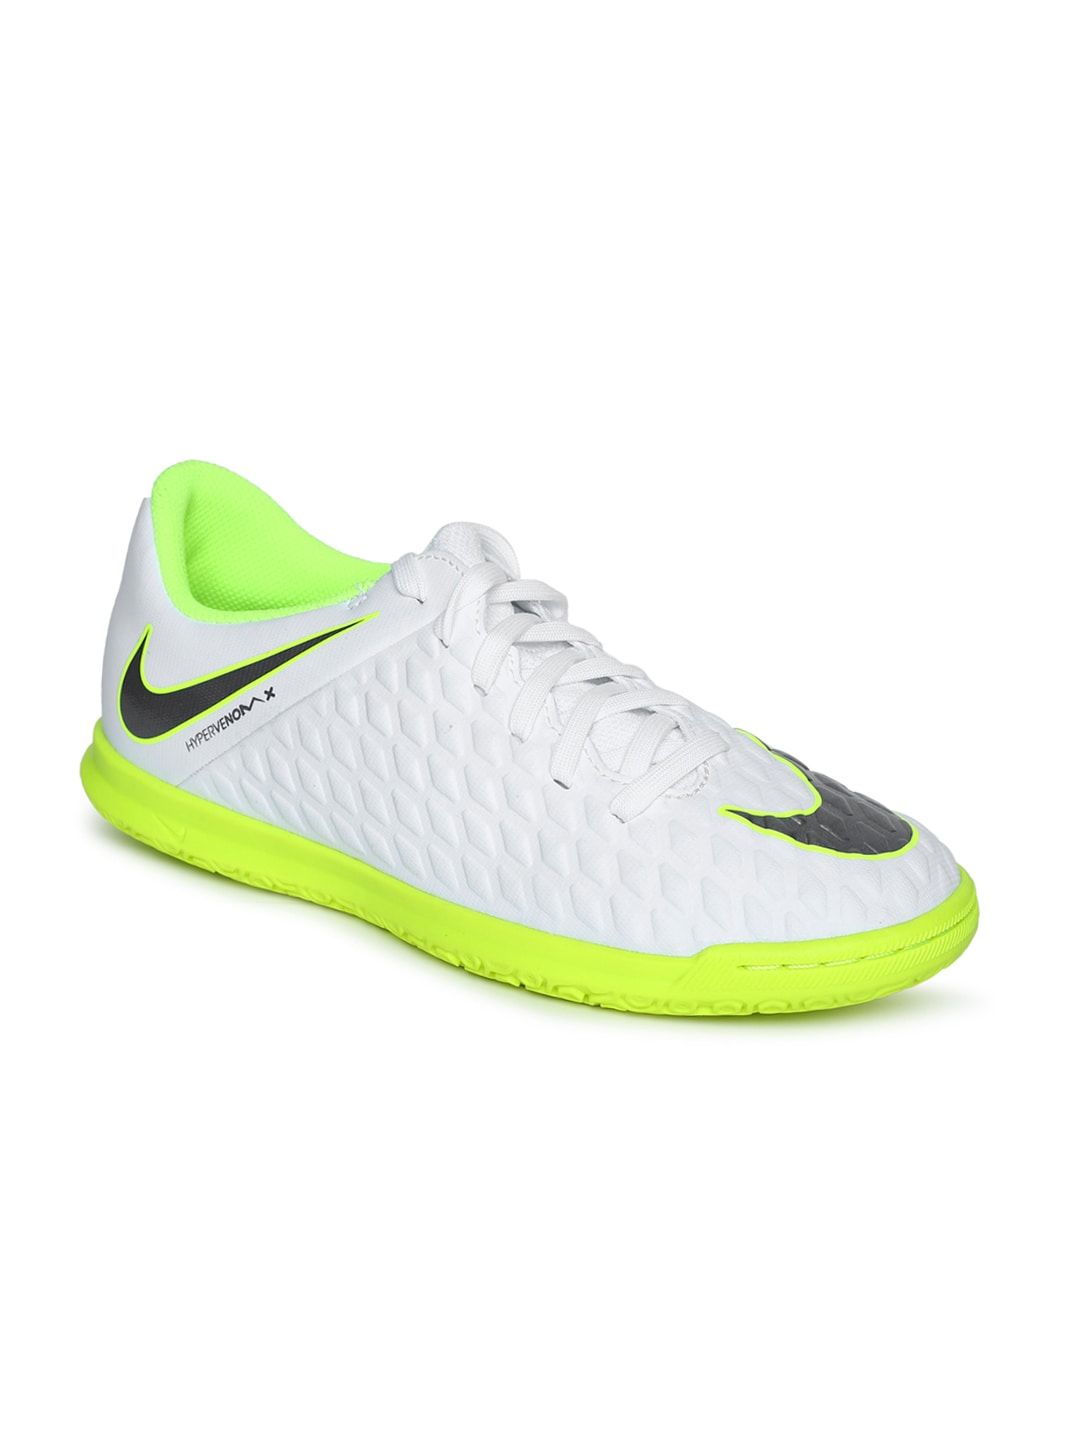 0f093bc118be Nike Shoes Of Kids Sports - Buy Nike Shoes Of Kids Sports online in India